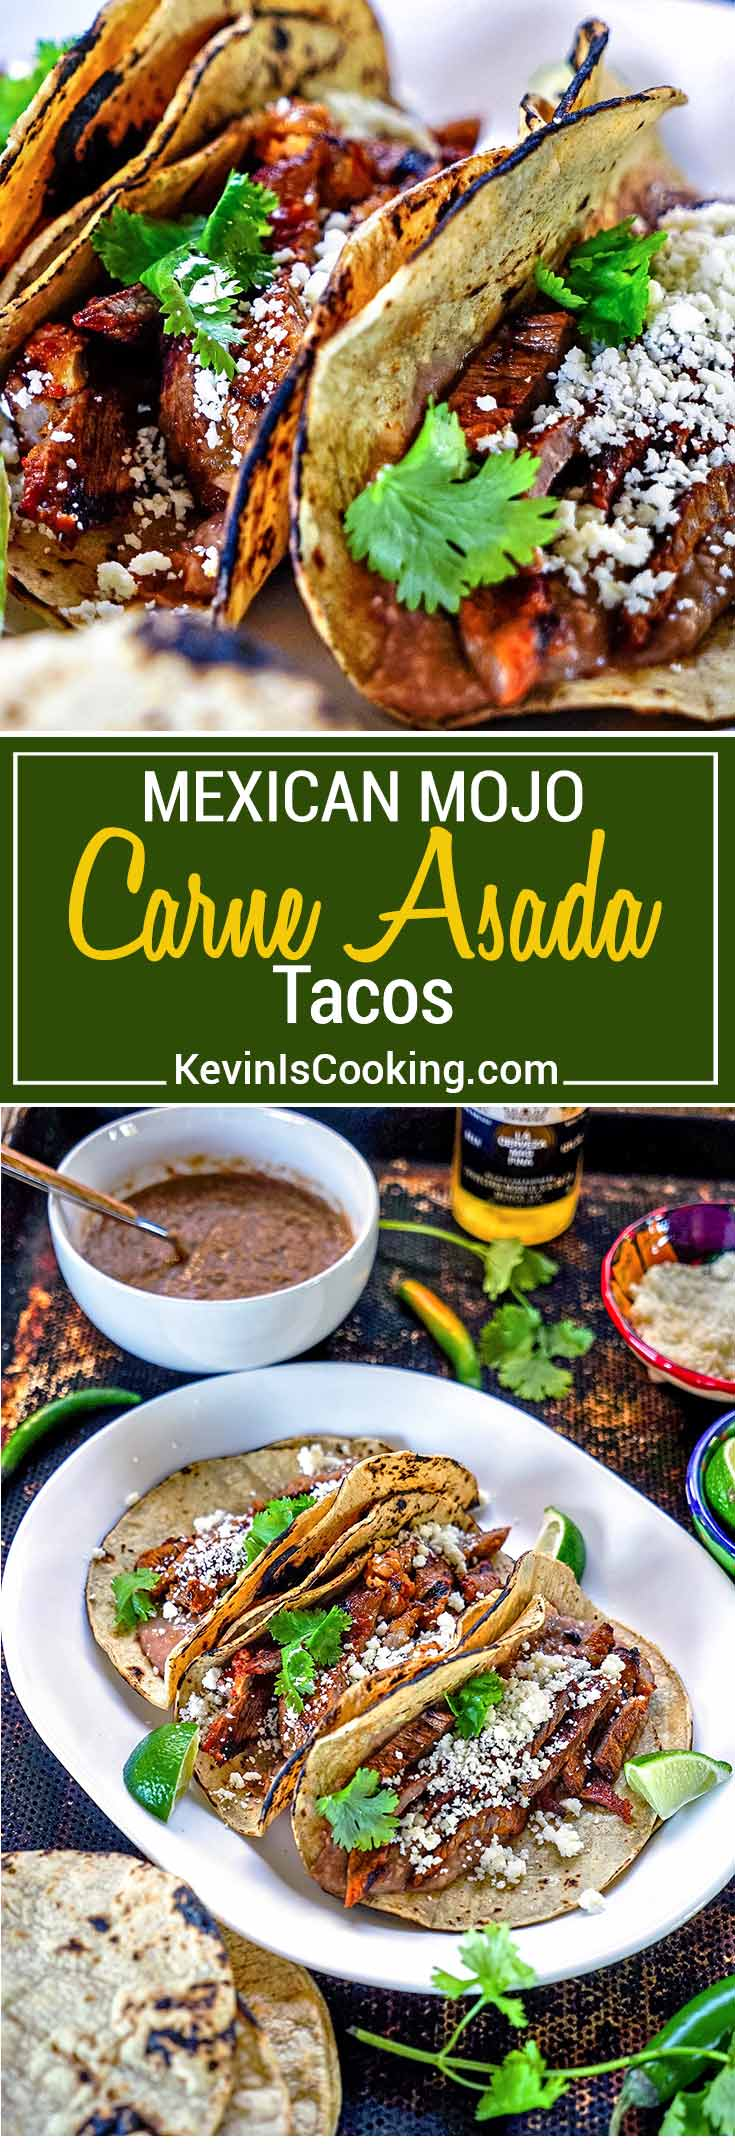 Mojo Carne Asada Tacos - A blend of chiles, garlic, oil and orange juice marinate this skirt steak only after it's been soaked in beer first. Grill and eat… amazing flavors!